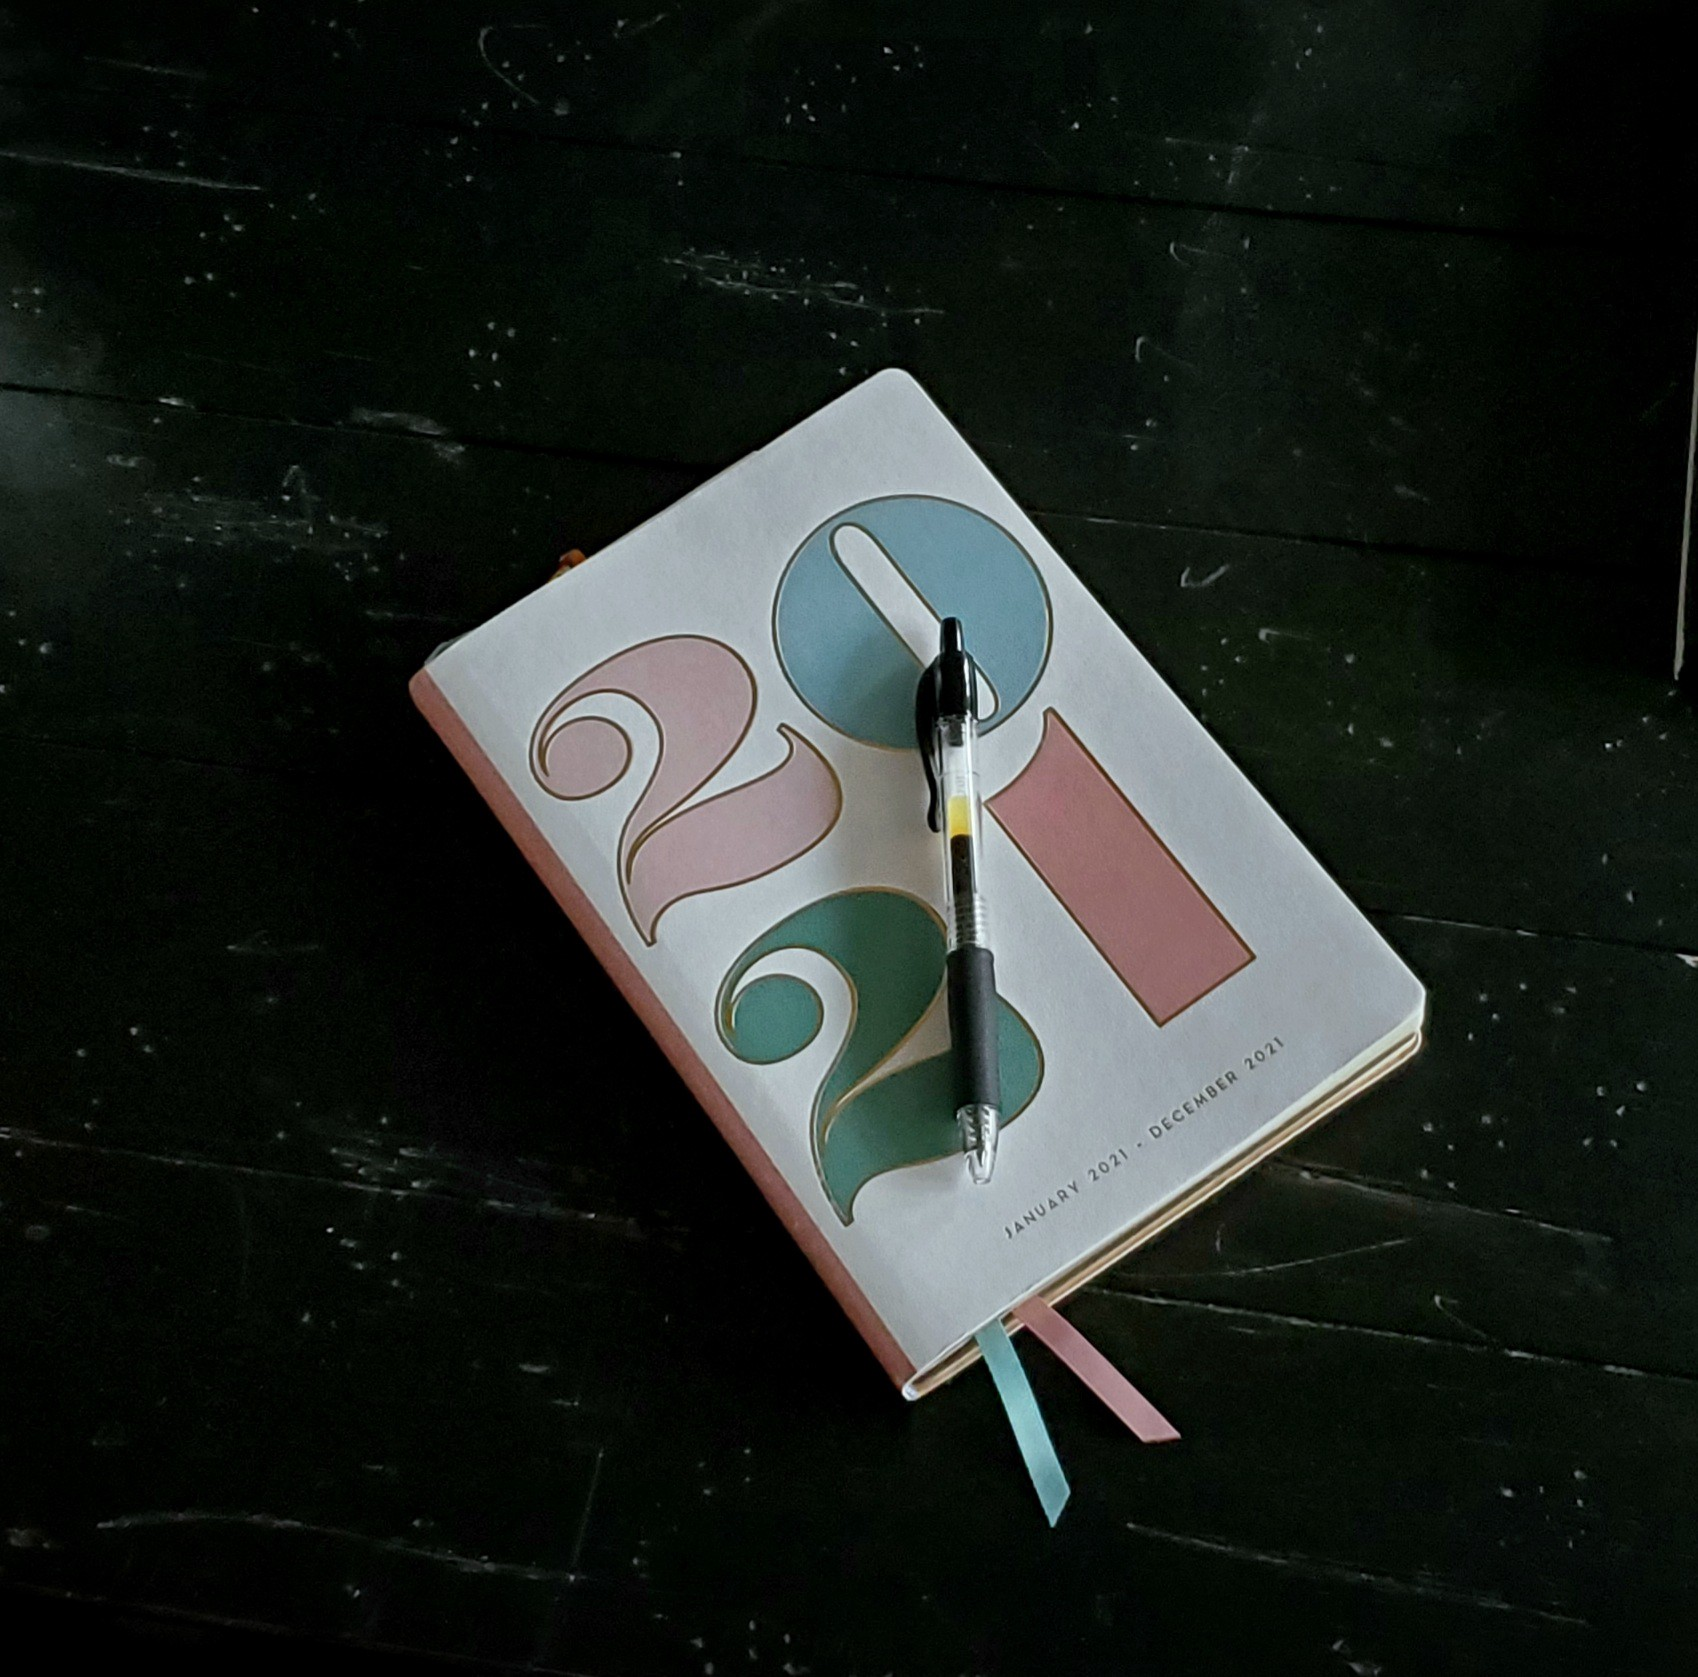 white, pink, blue and green 2021 calendar with black wood background. Black pen on top.